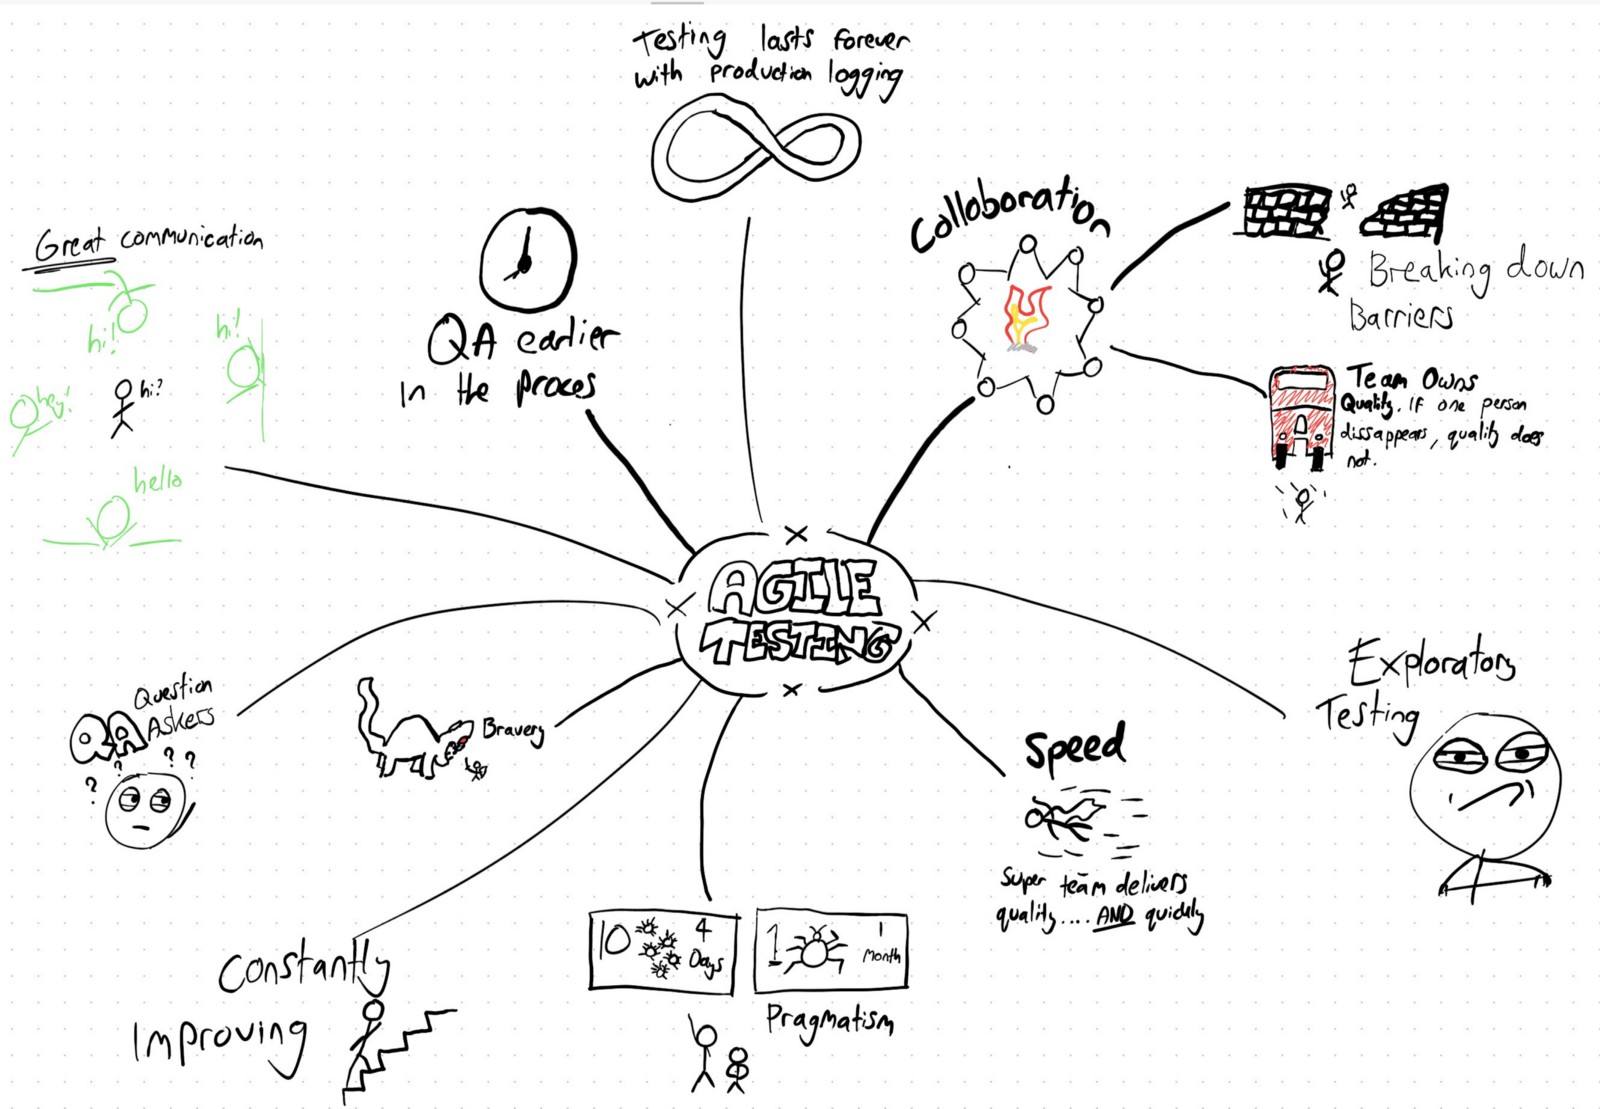 30 Days of agile testing — Day 2: Create a mind map